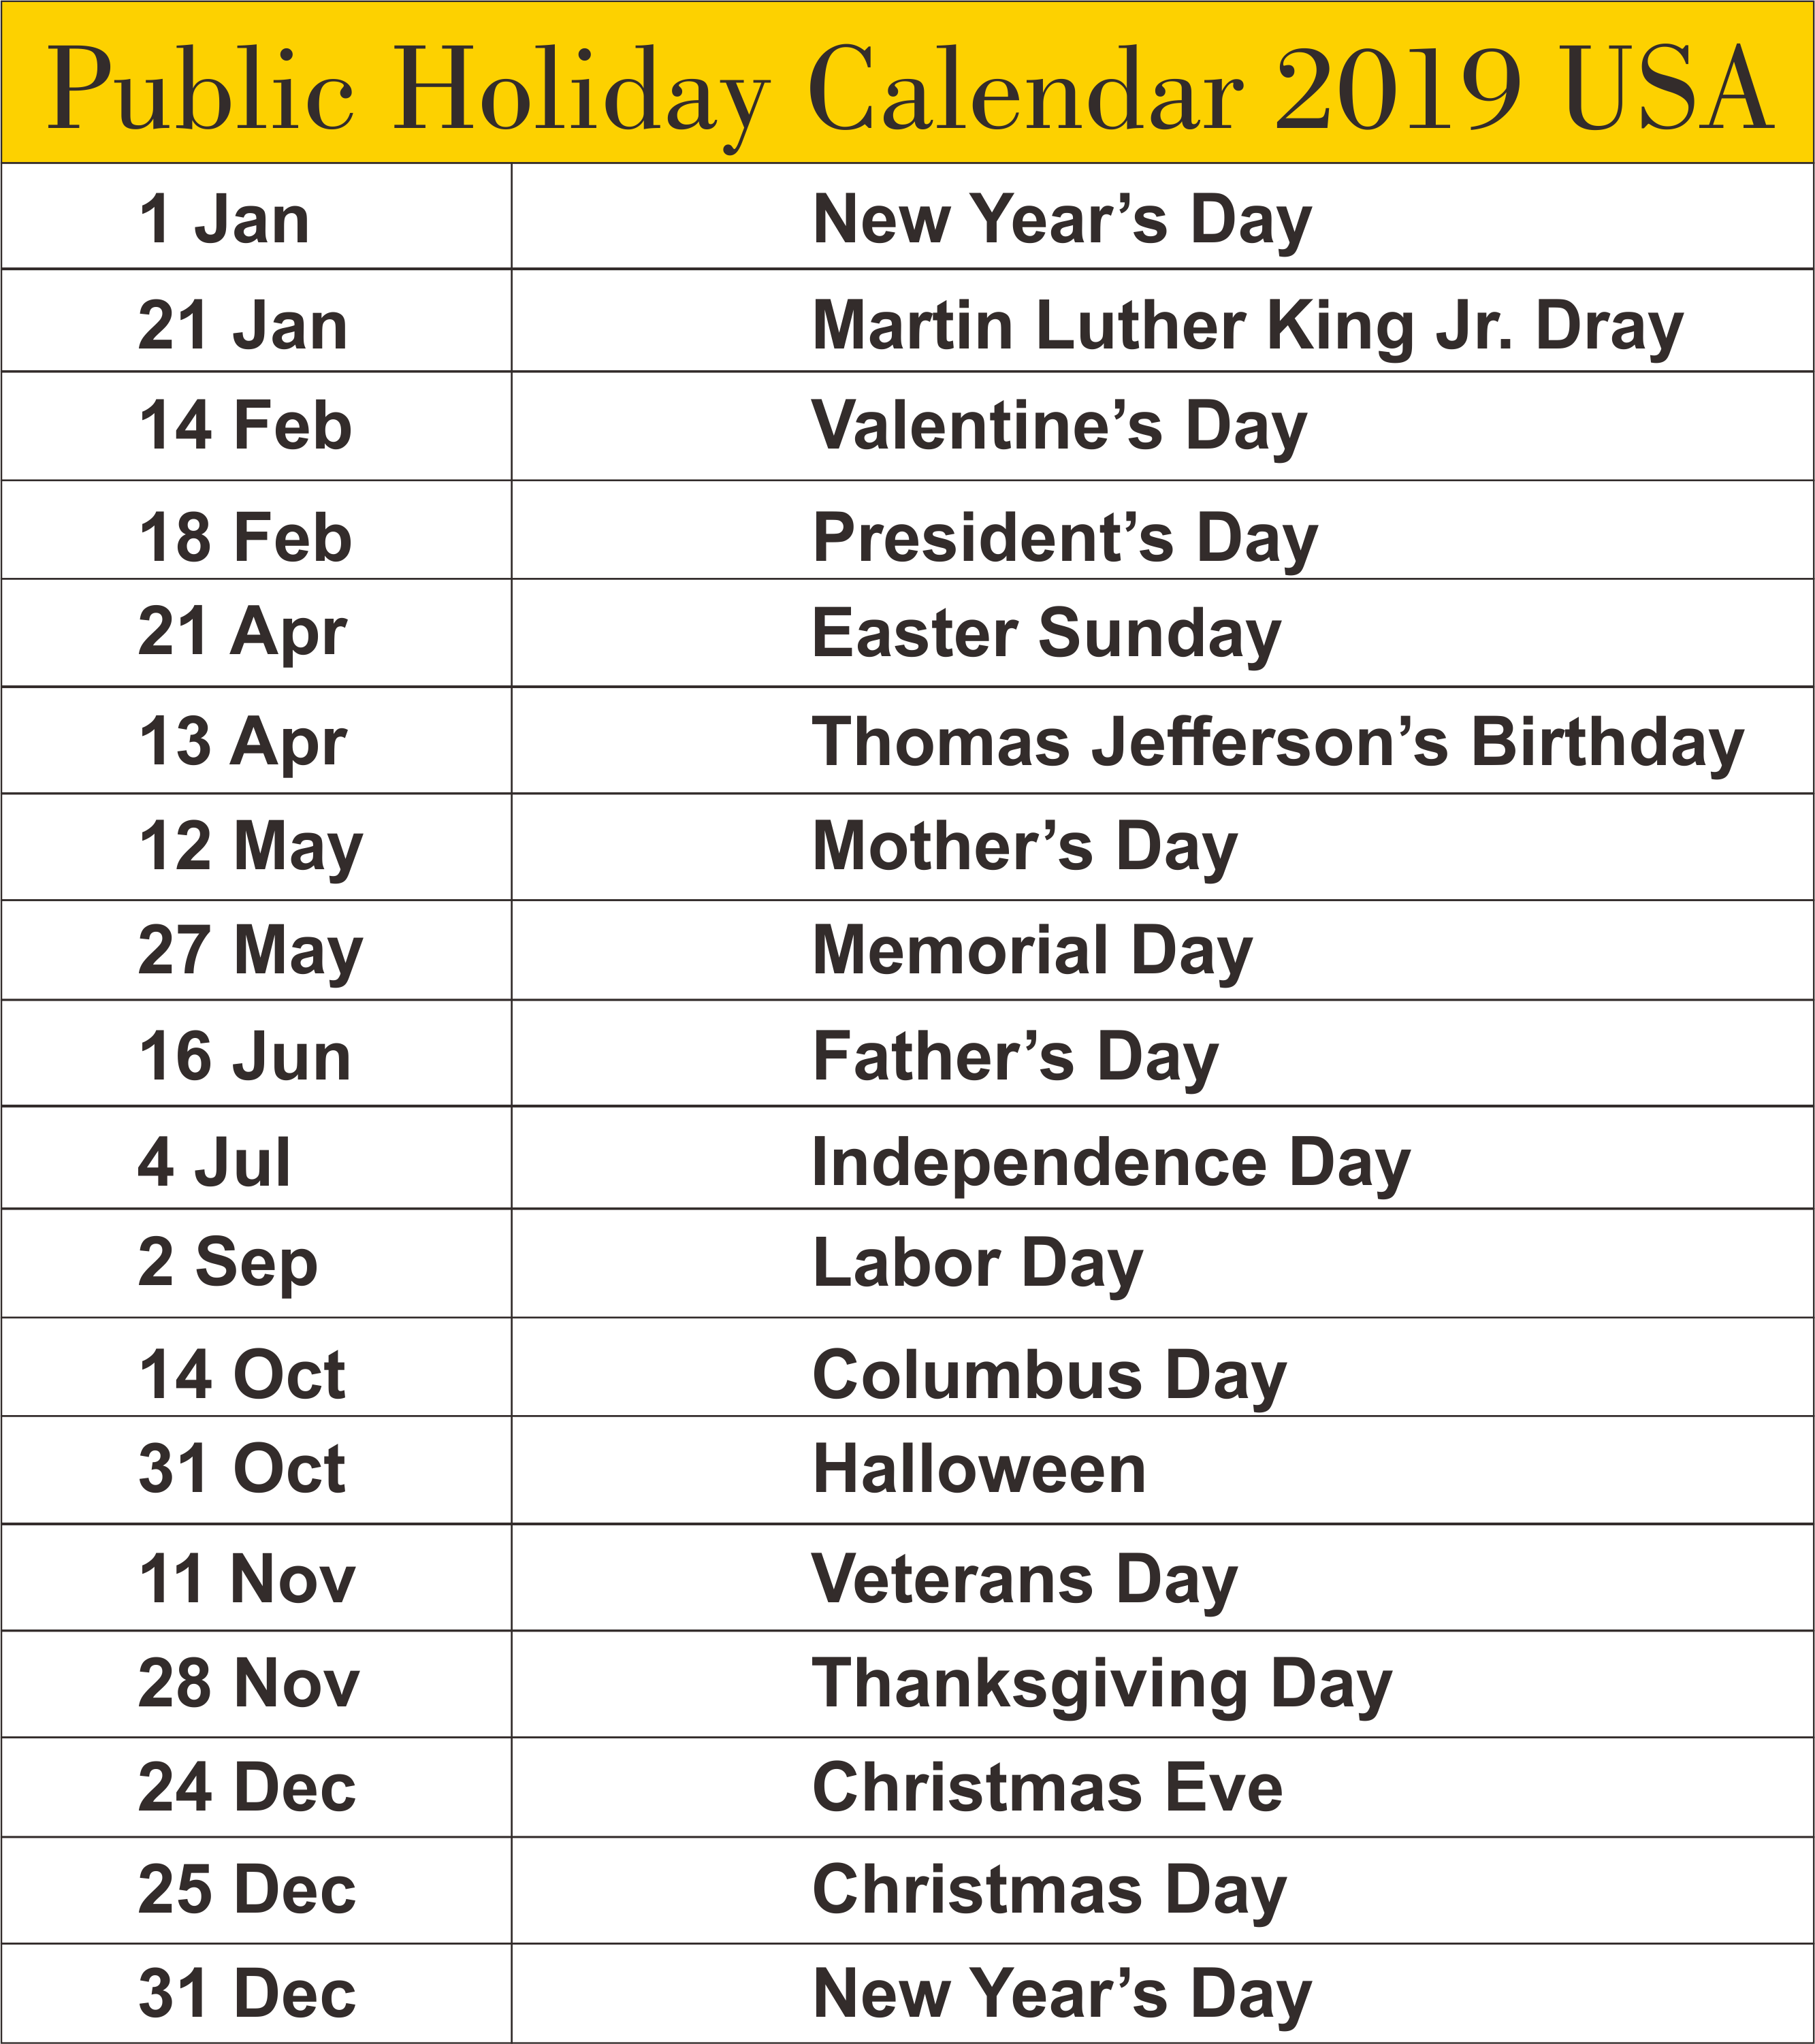 Year 2019 Calendar United States With Free USA State Of America Public Holidays